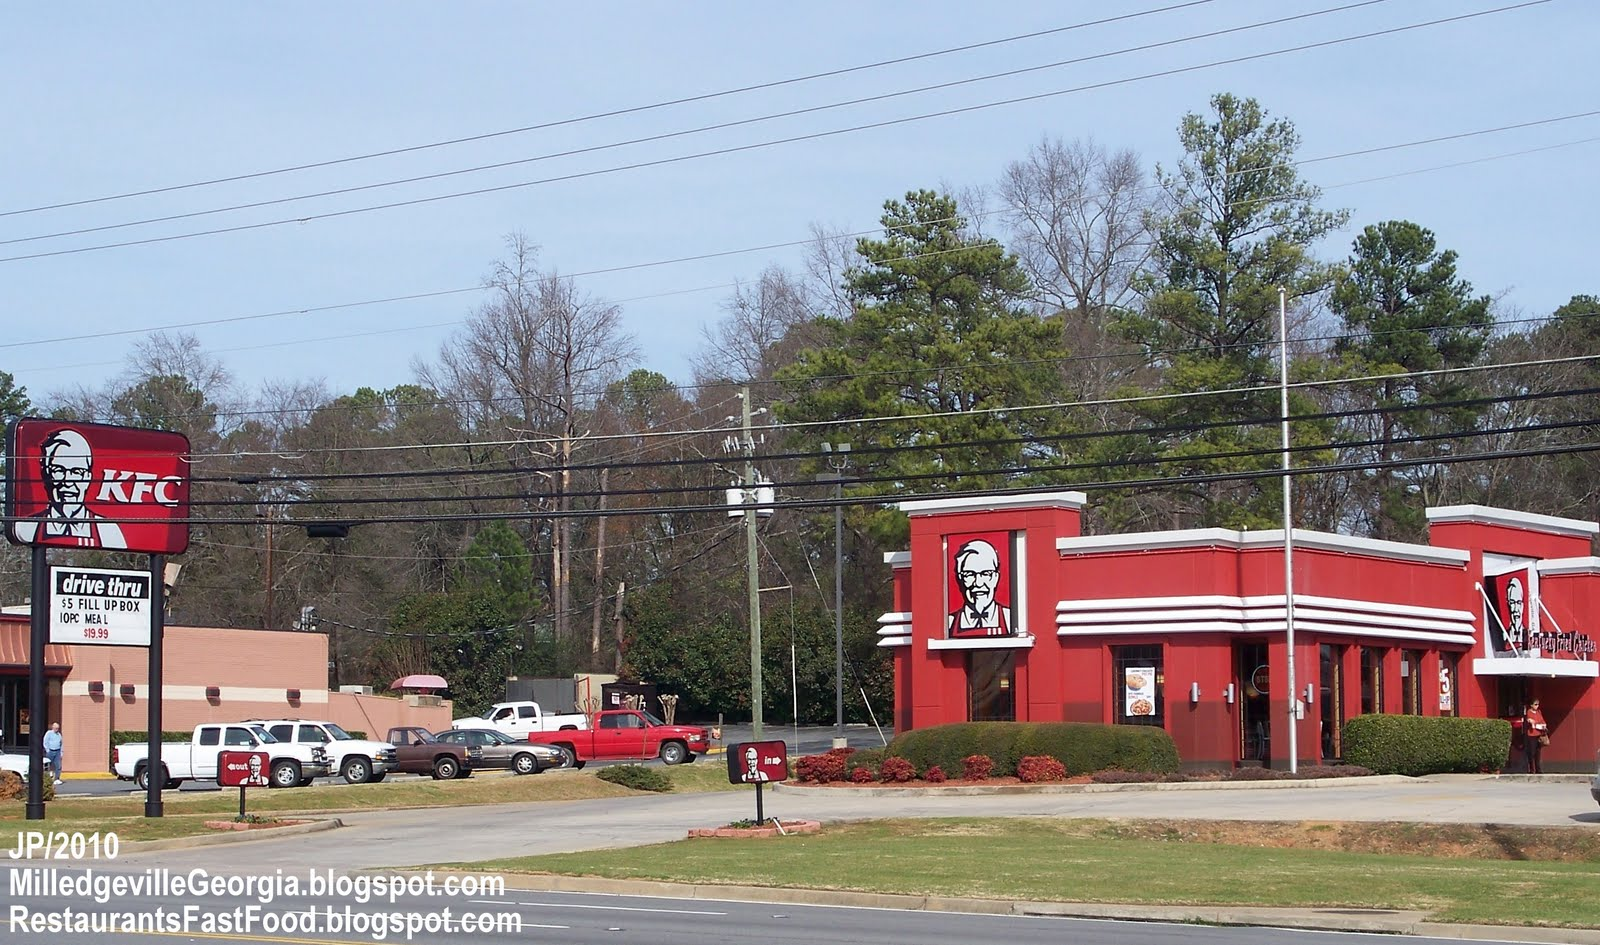 http://1.bp.blogspot.com/-nY_FrizNWHY/Th9Kn9zsDiI/AAAAAAAD9Kc/3T05sVmx3qo/s1600/KFC+Kentucky+Fried+Chicken+Fast+Food+Restaurant%252C+Milledgeville+Georgia.JPG